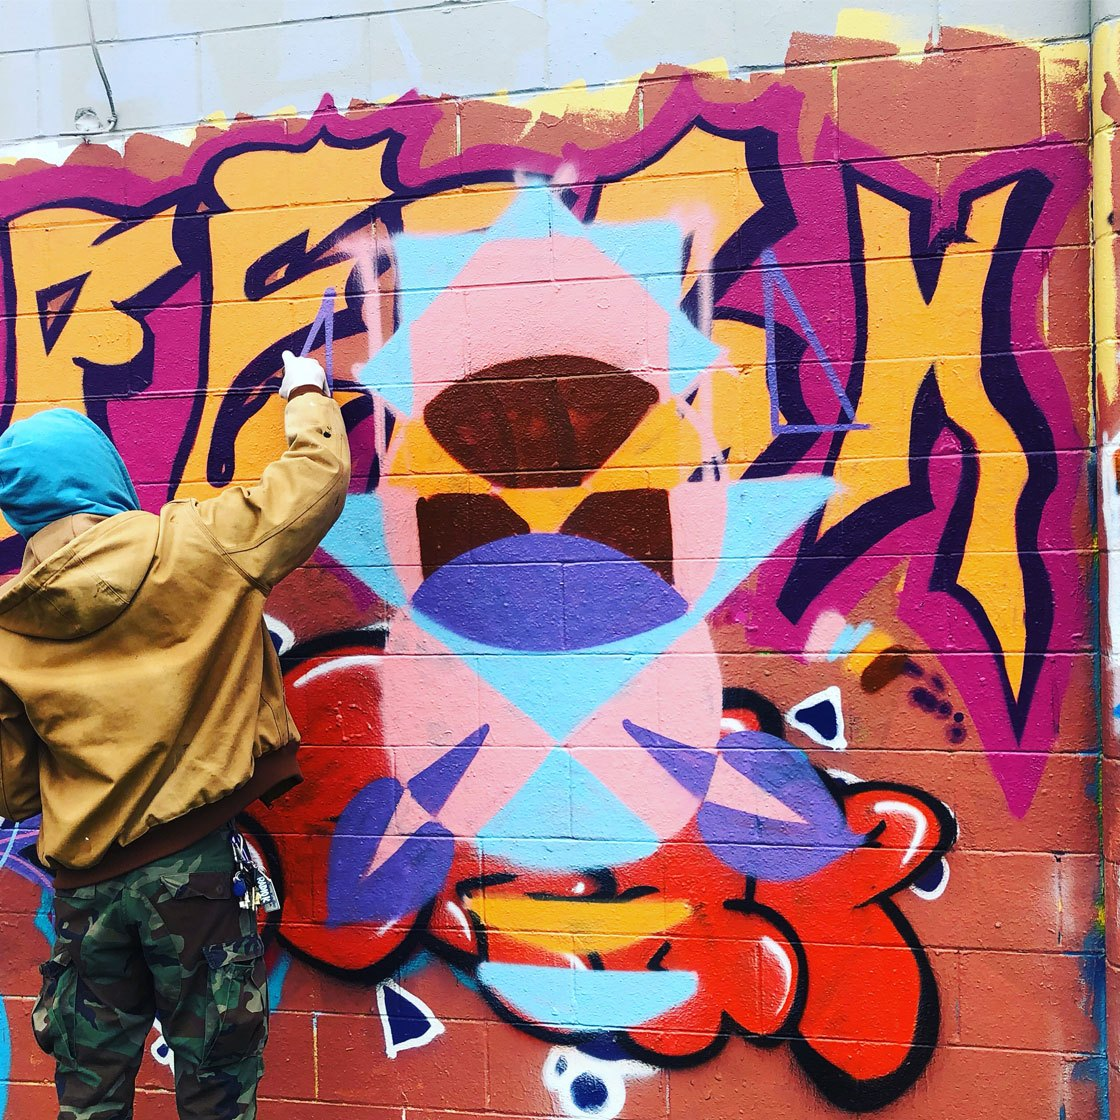 A young person using a spray paint can on a colorful mural